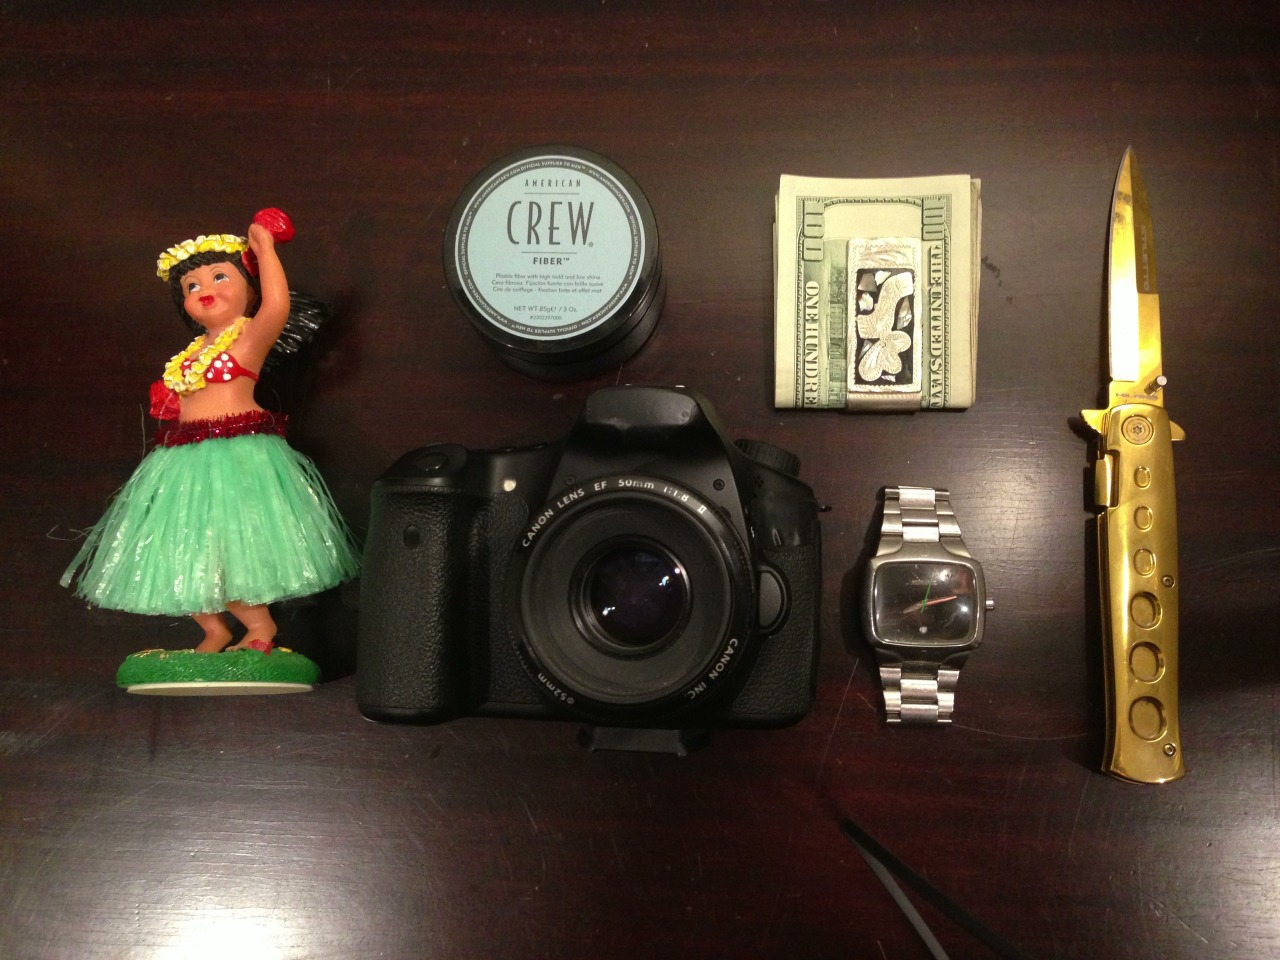 Everyday Carry Submitted By: surferboytimbo Lucky Hula Girl For My Car - Shop on Amazon Crew Fiber - Purchase on Amazon Canon 60d (Taped out Labels) - Purchase on Amazon Money Clip From Mexico Nixon Player Watch - Purchase on Amazon Gold Switchblade - Purchase on Amazon